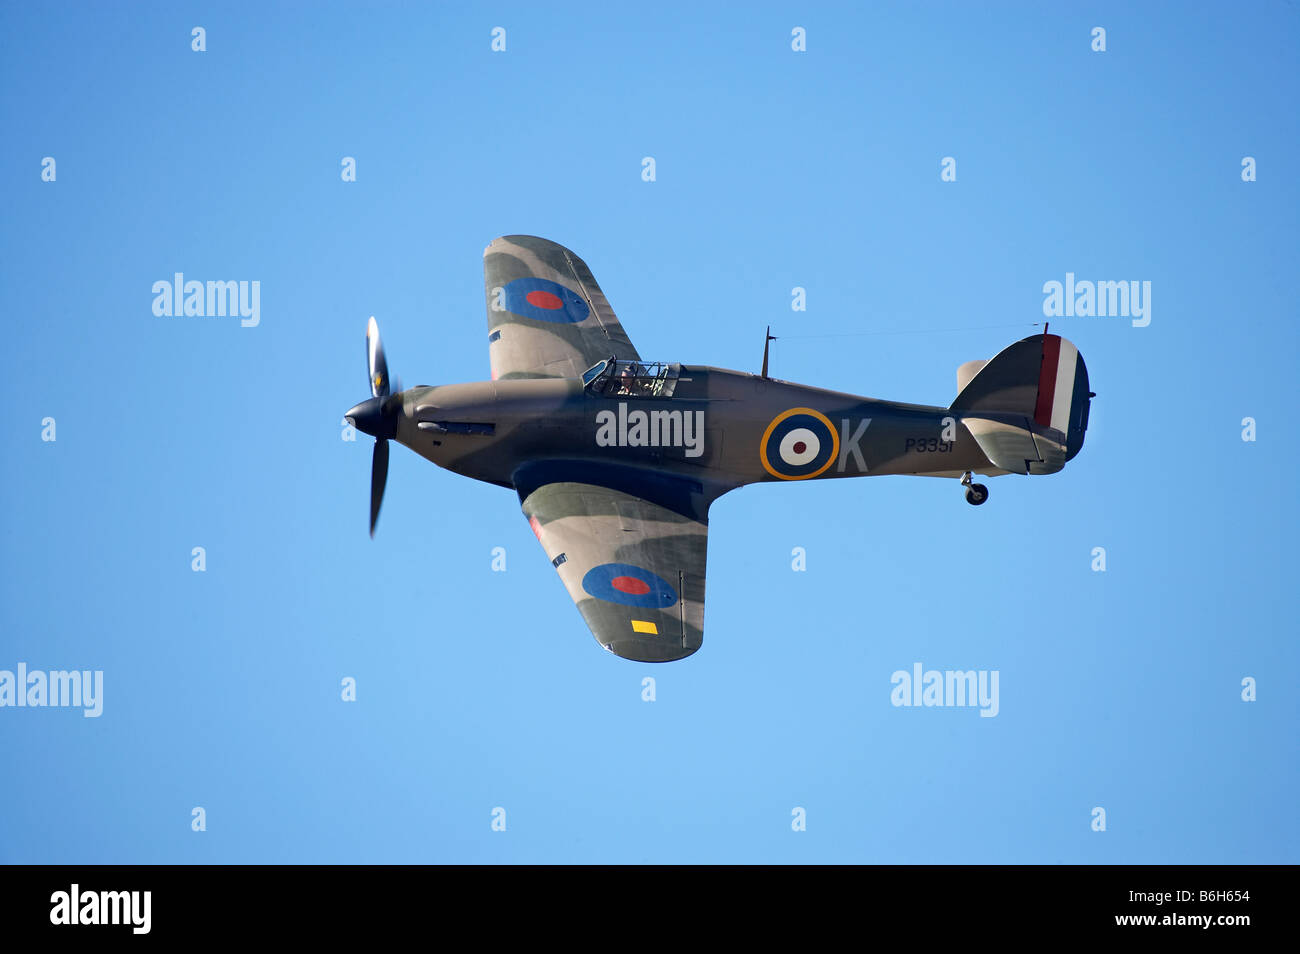 Hawker Hurricane British and allied WWII Fighter Plane - Stock Image